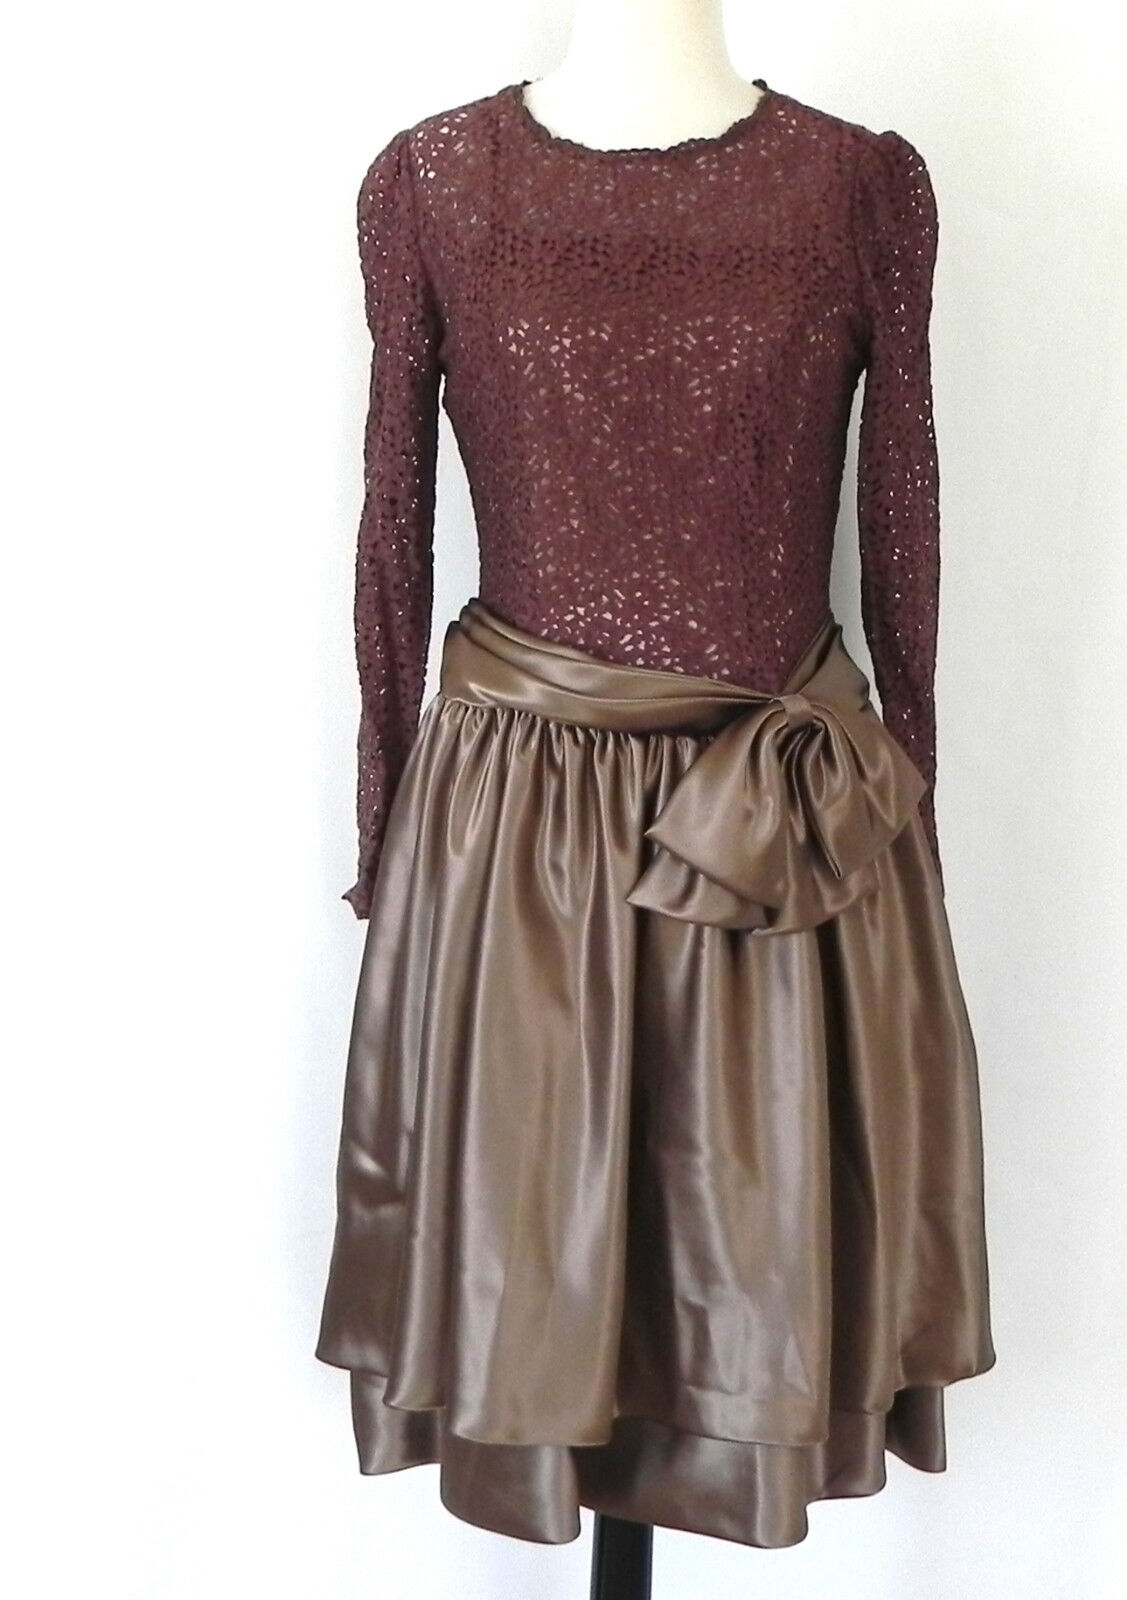 Preference Dress Lace Satin Long Sleeve Tiered Bow Trim Size S